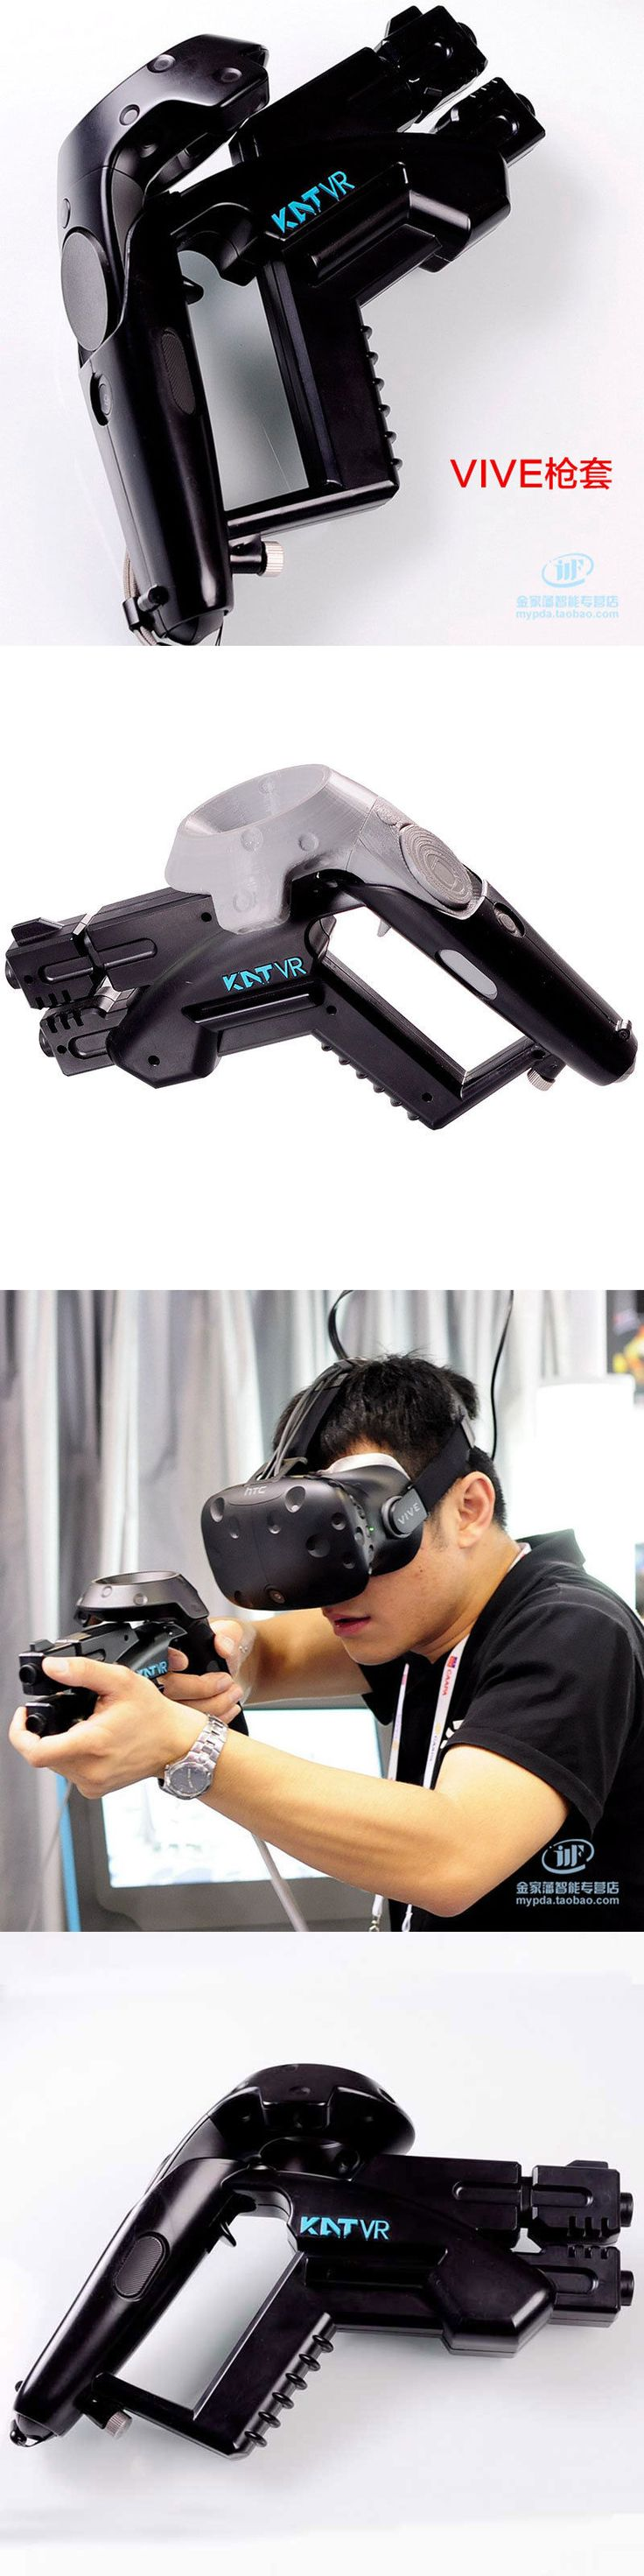 Other Virtual Reality Accs: New Vr Handgun Small Pistol Gun Shooting Game For Htc Vive Glasses Vr Shop -> BUY IT NOW ONLY: $53.89 on eBay!